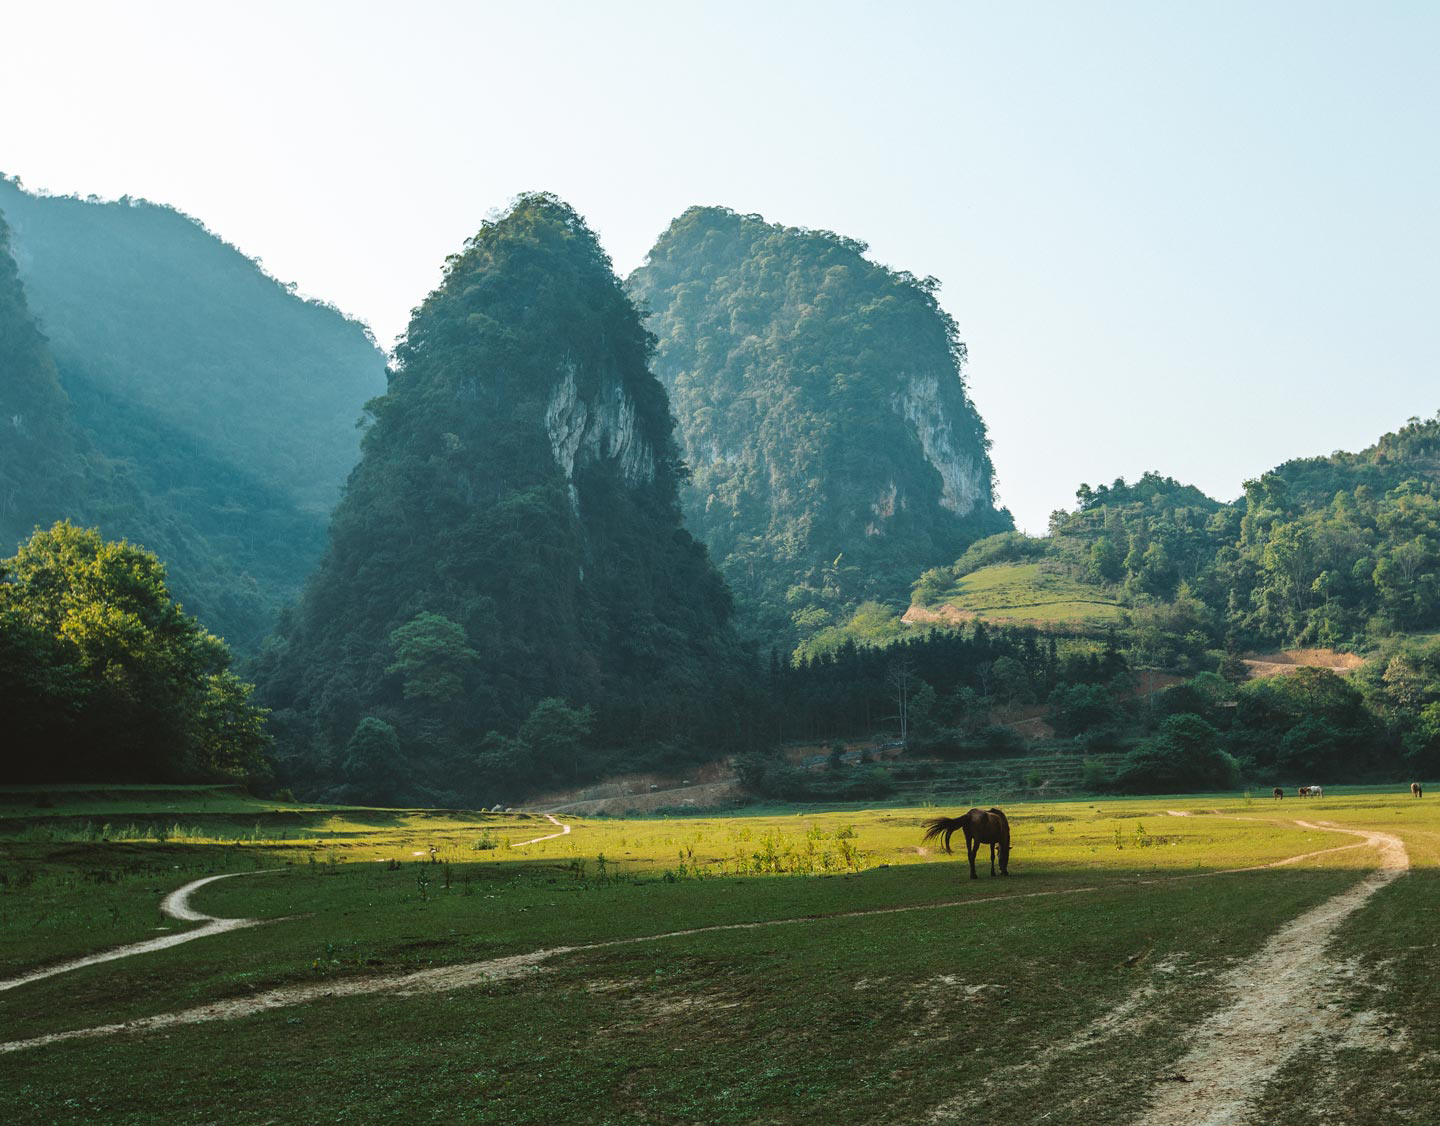 nui-thung-mountain-vietnam-cao-bang